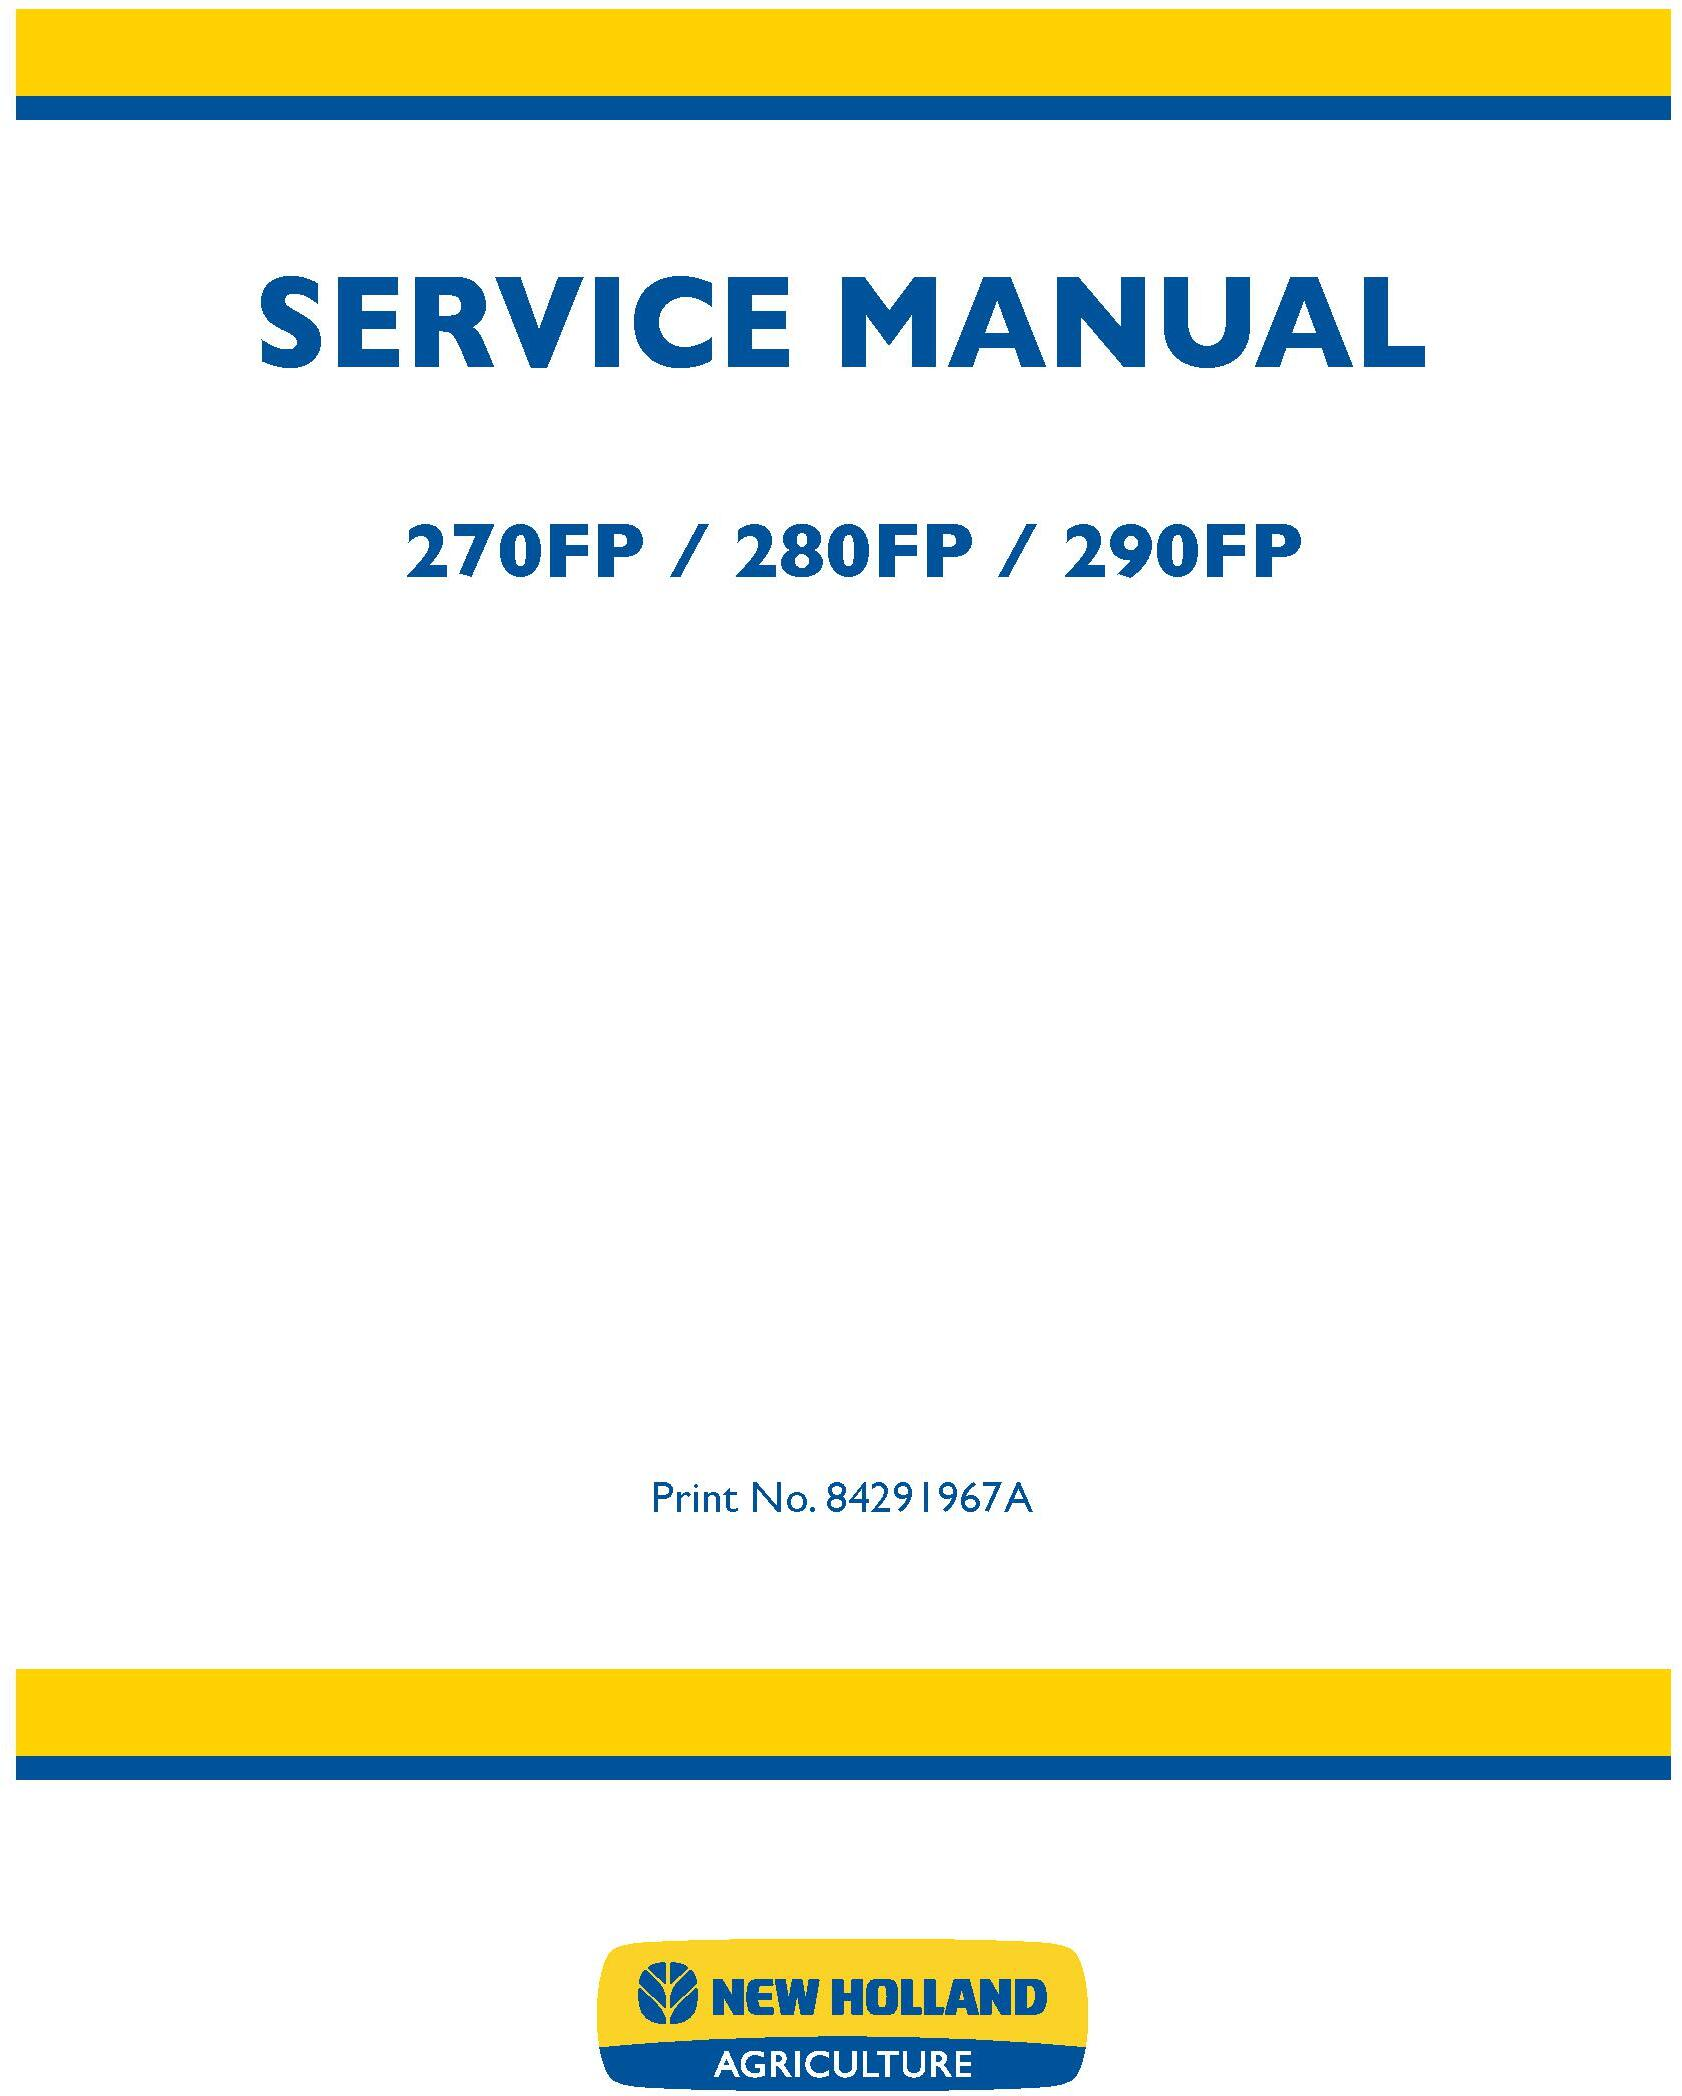 New Holland 270FP, 280FP, 290FP Forage Equipment Headers Service Manual - 20054